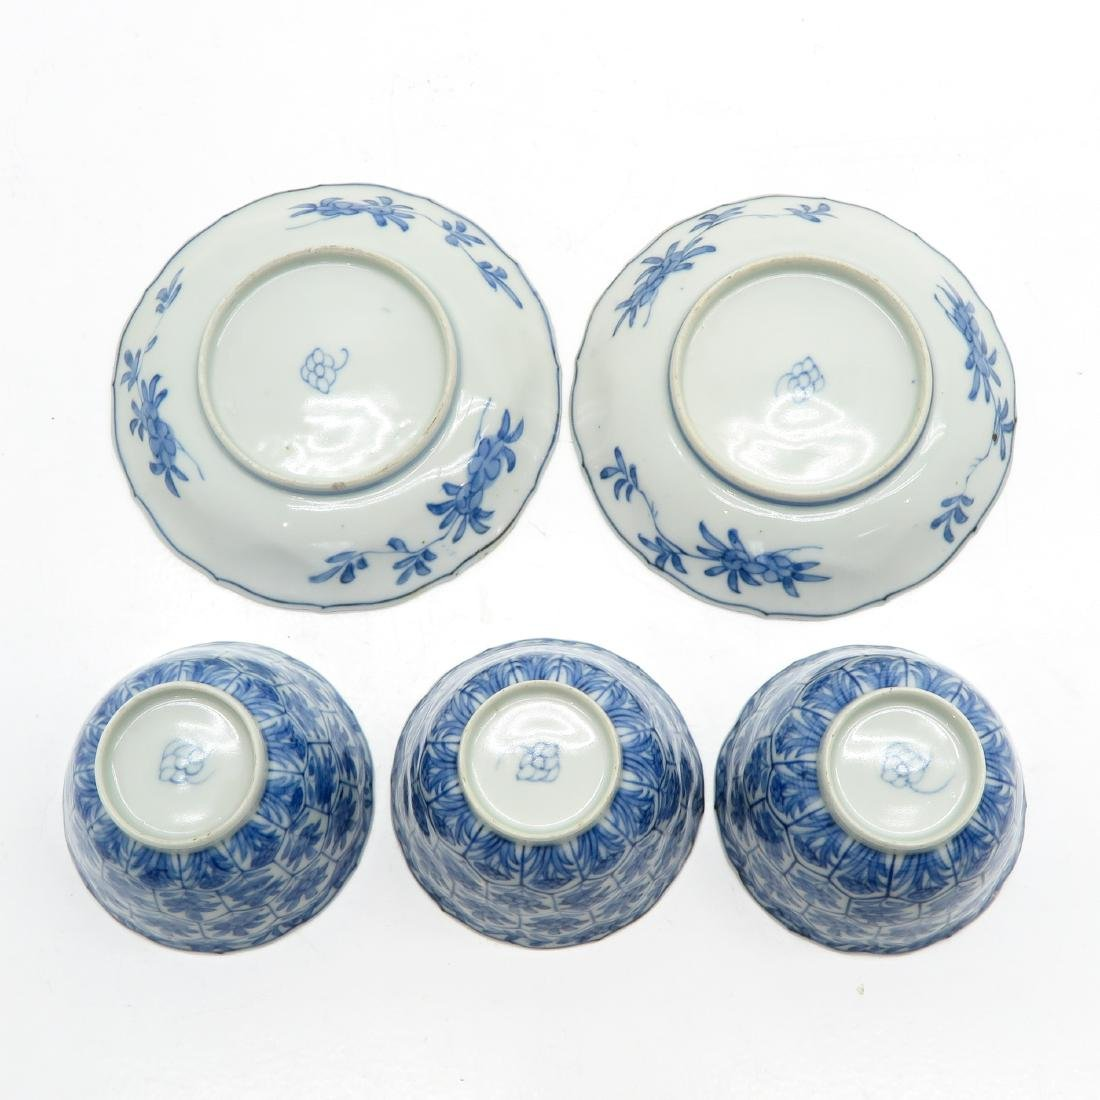 A Lot of Blue and White Cups and Saucers - 6